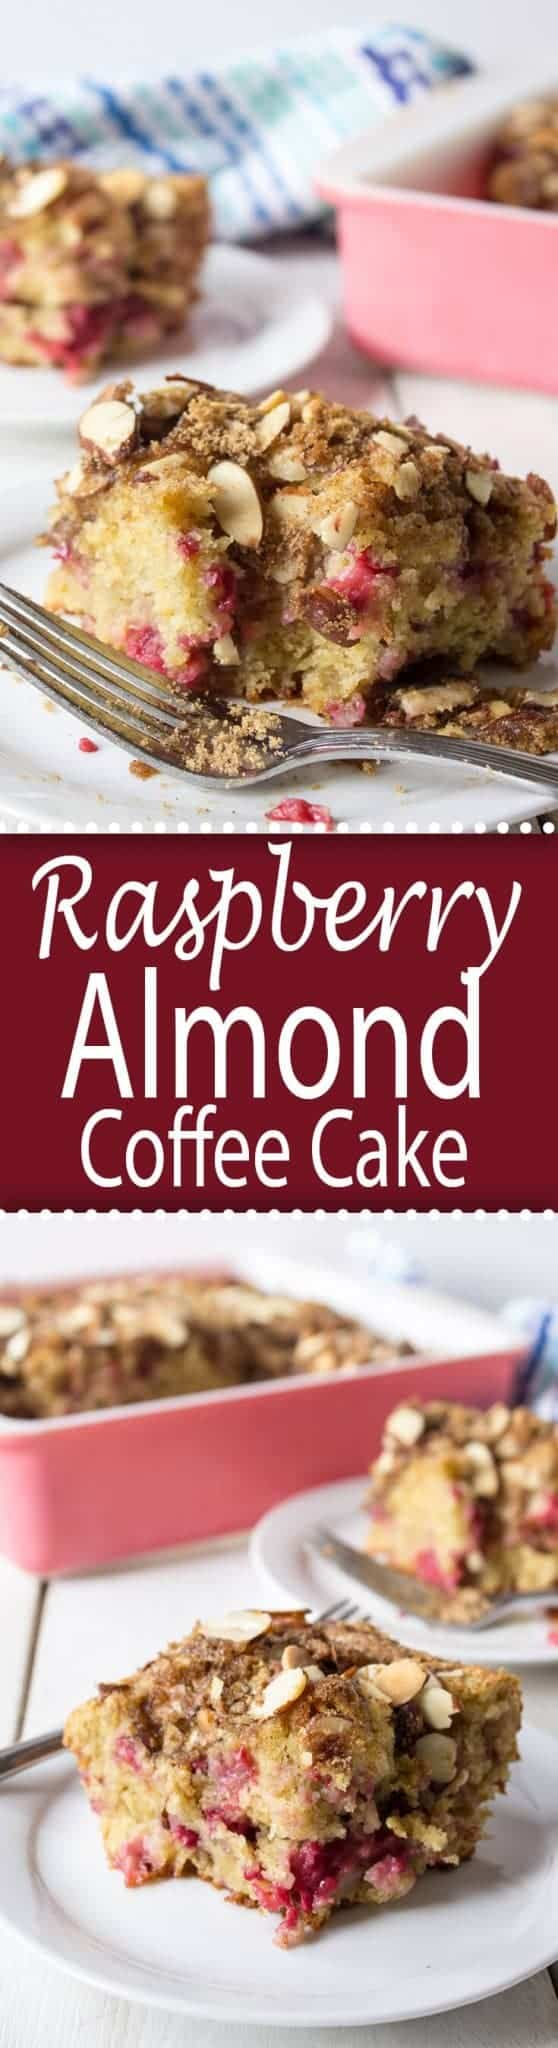 This Raspberry Almond Coffee Cake is perfect for breakfast, brunch or dessert!